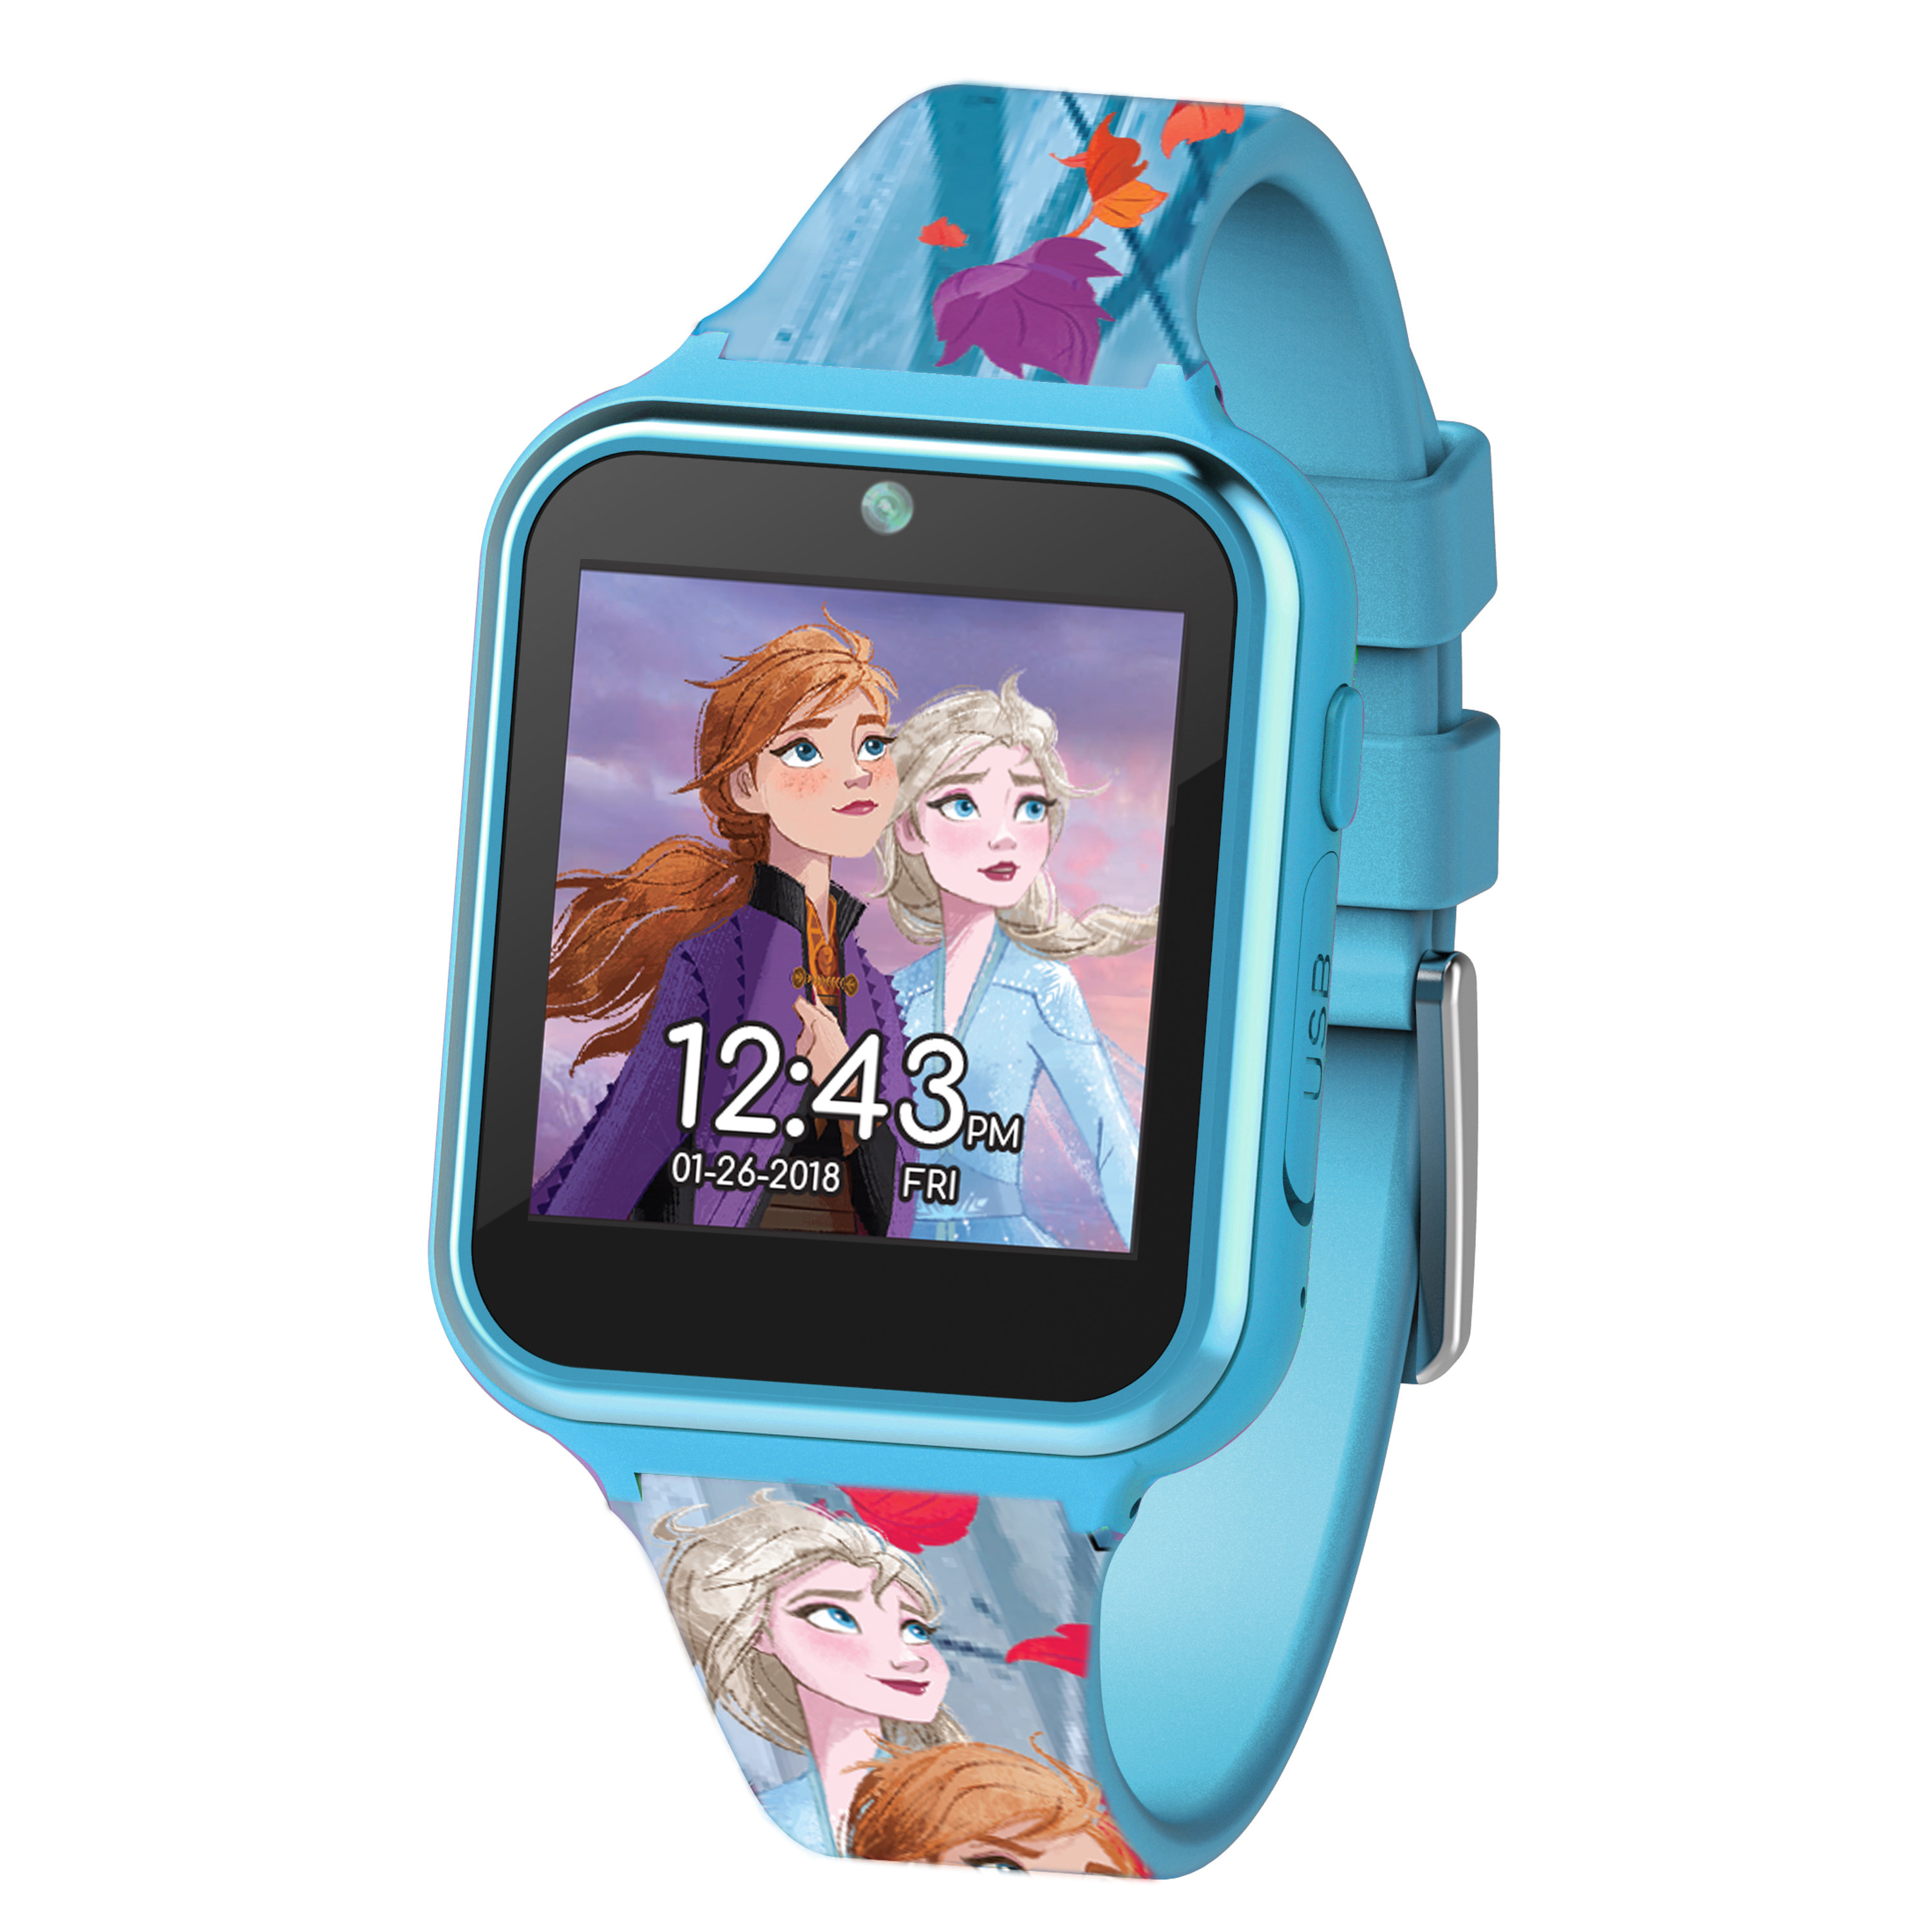 a smart watch with a blue band featuring a design of anna and elsa from frozen on it